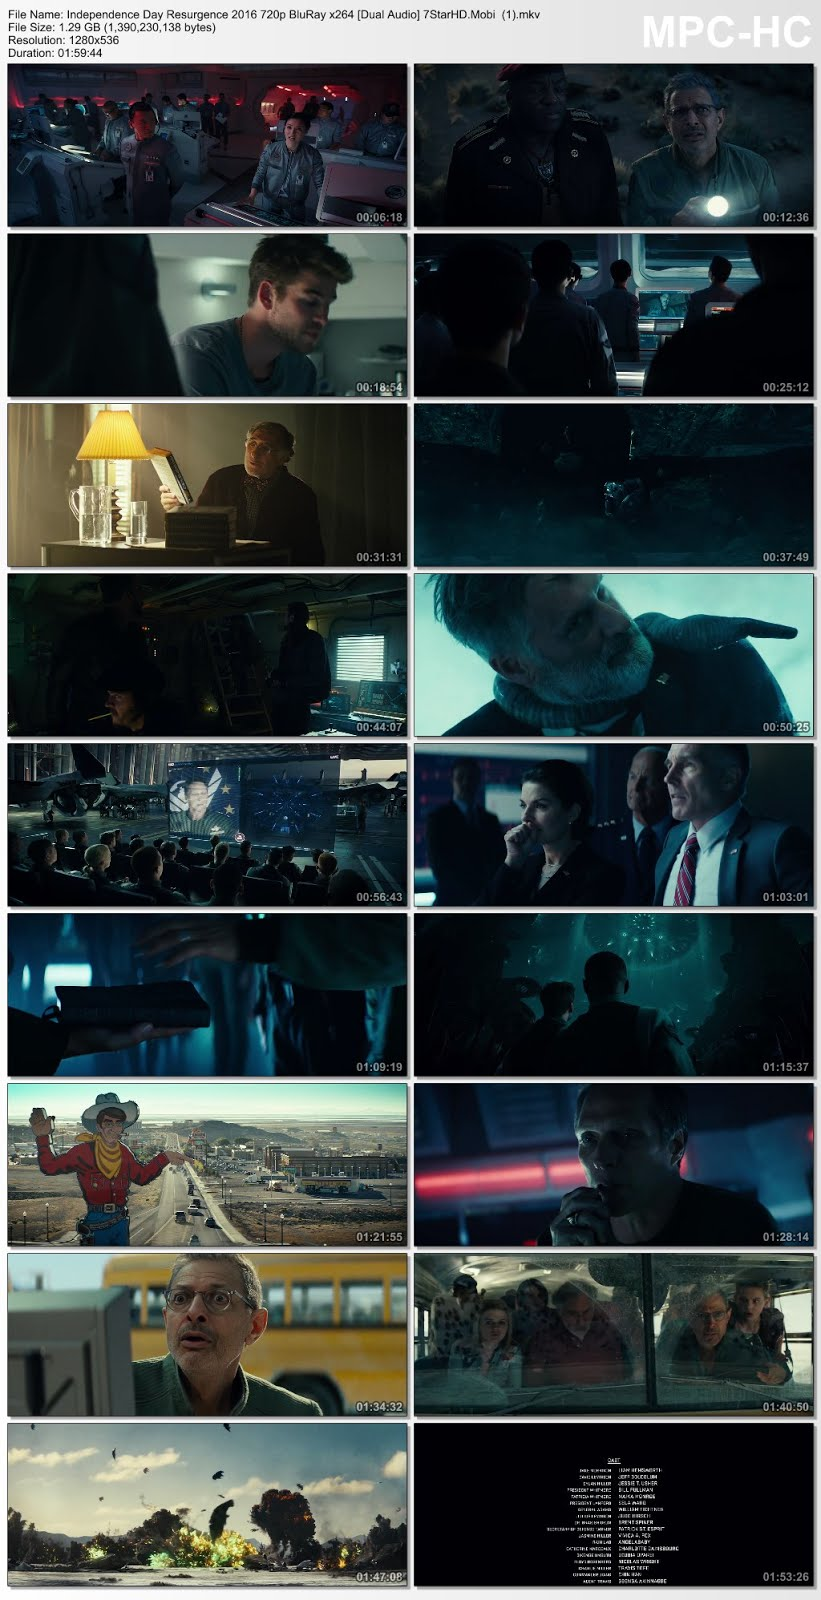 independence day resurgence download 1080p